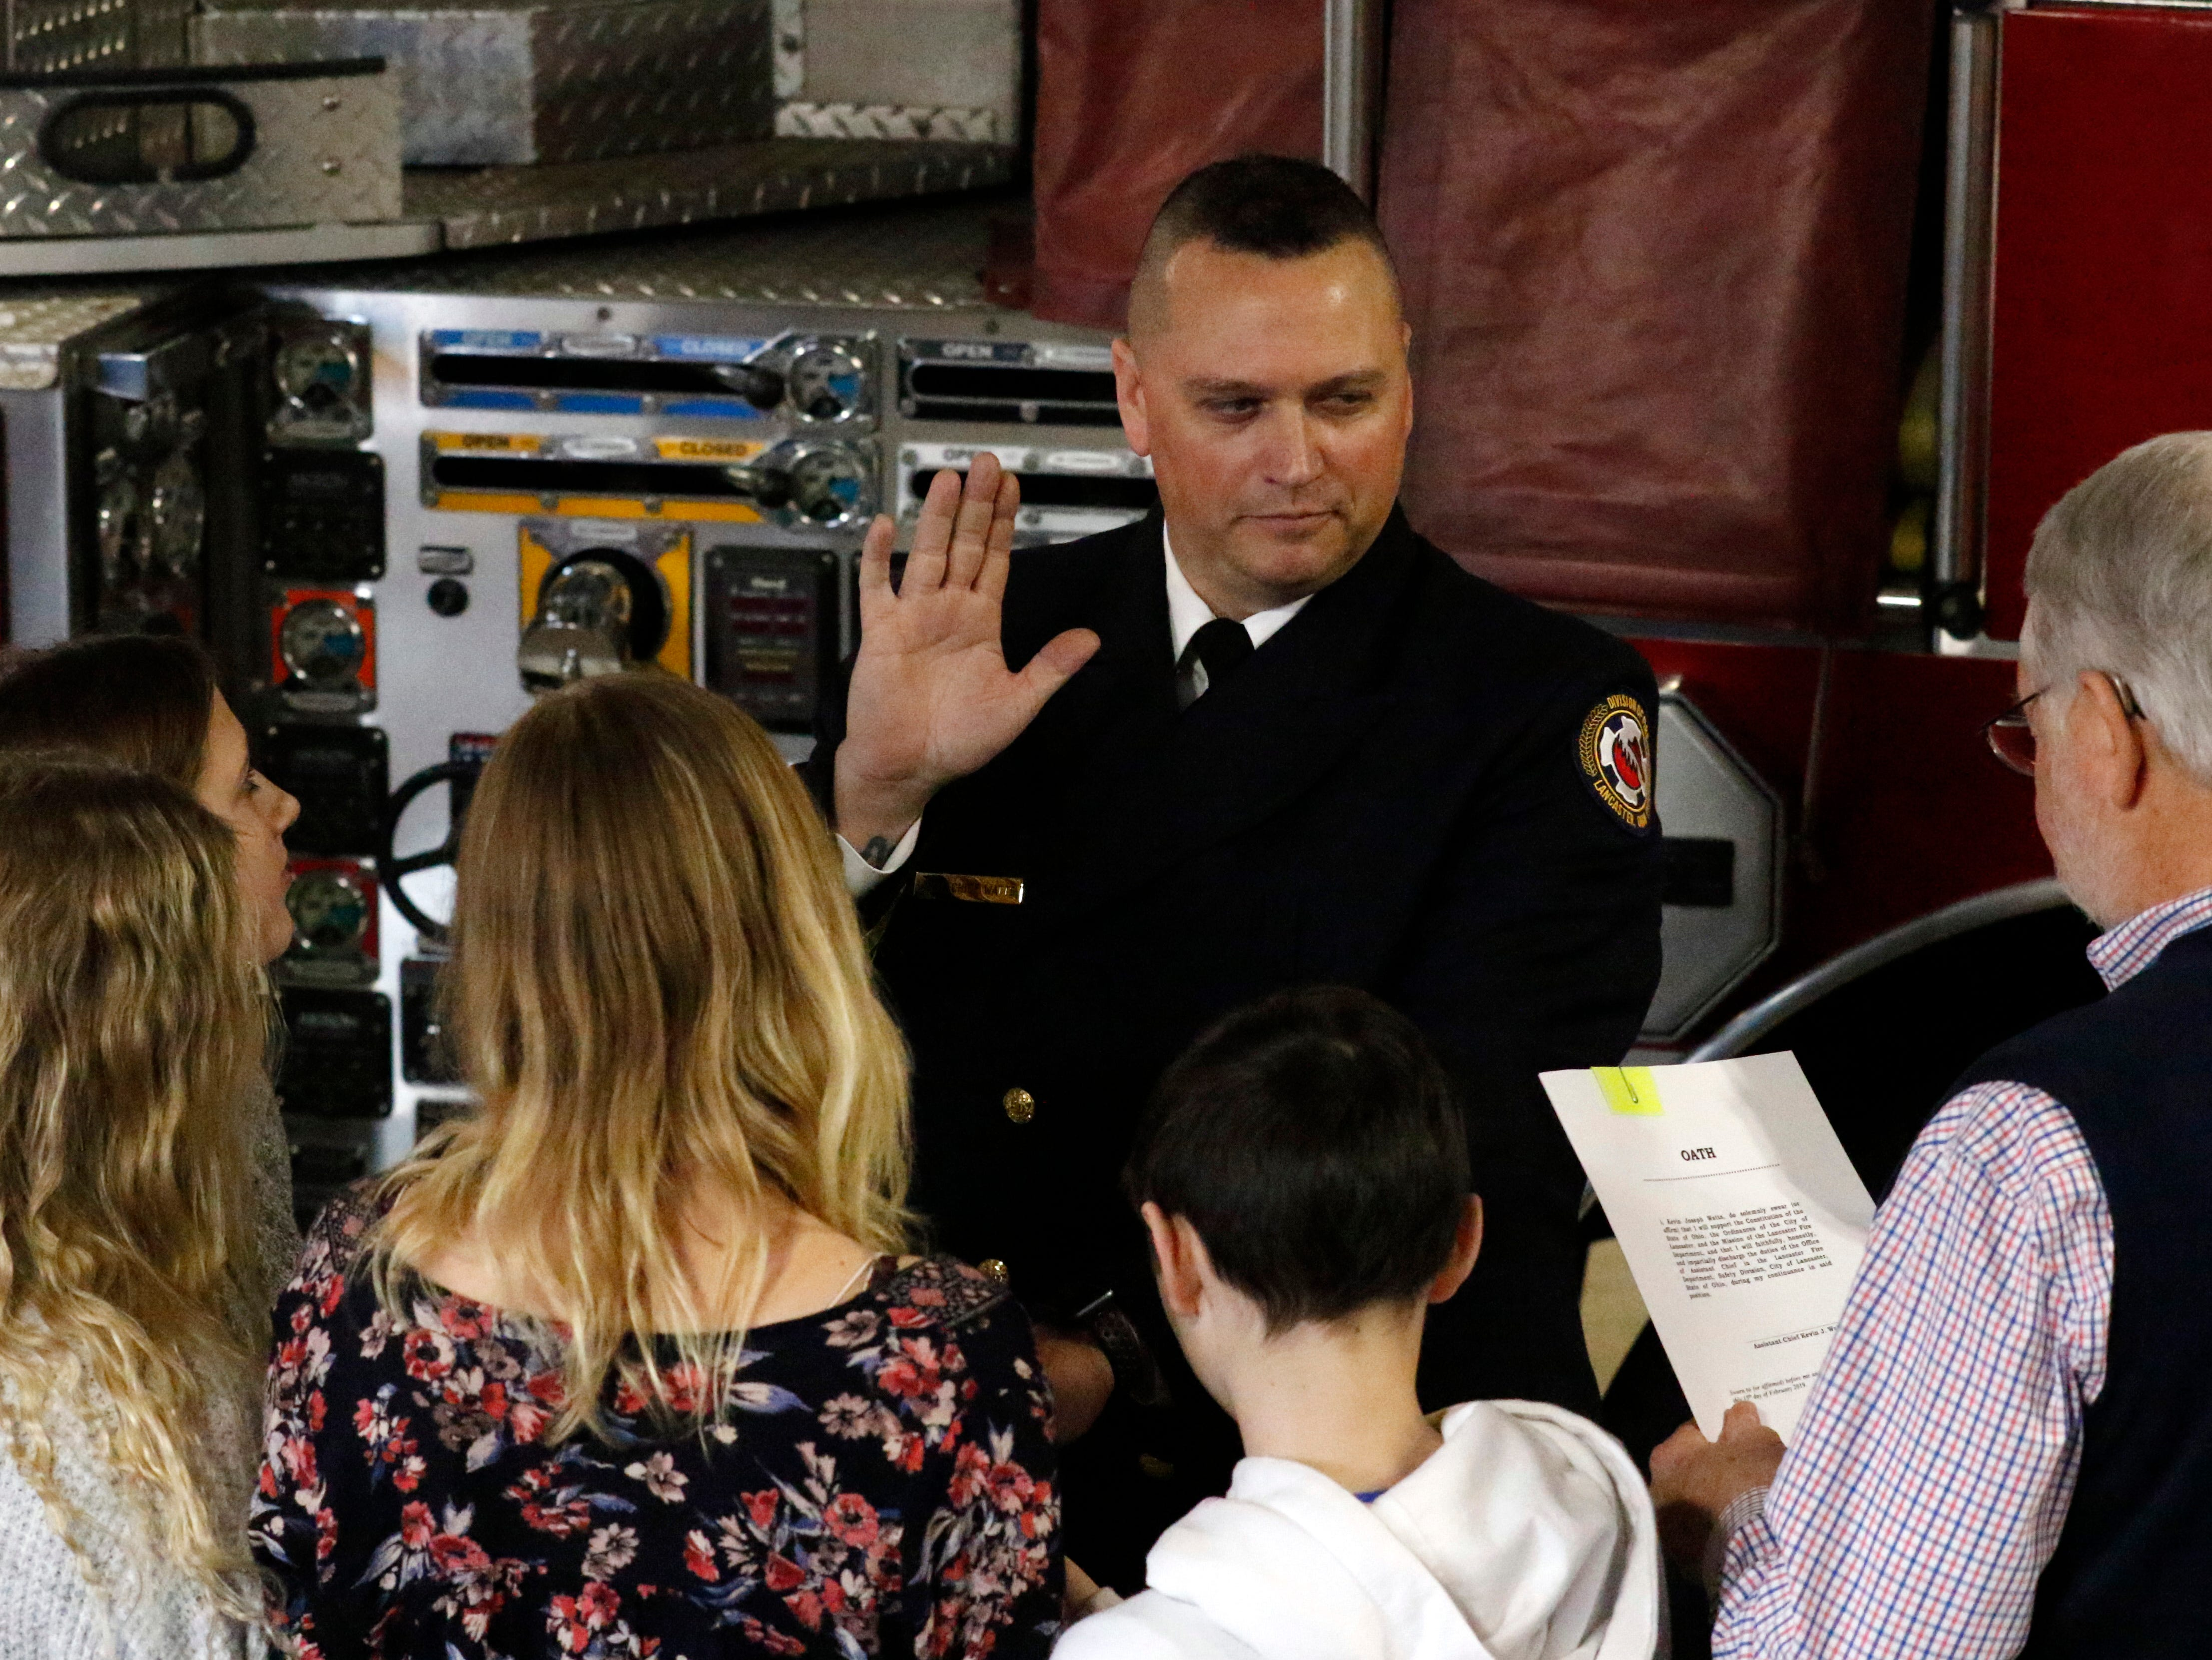 Assistant Chief K.J. Watts is sworn into his new position with the Lancaster Fire Department by Mayor David Scheffler Friday afternoon, Feb. 15, 2019, at Engine House One in Lancaster.